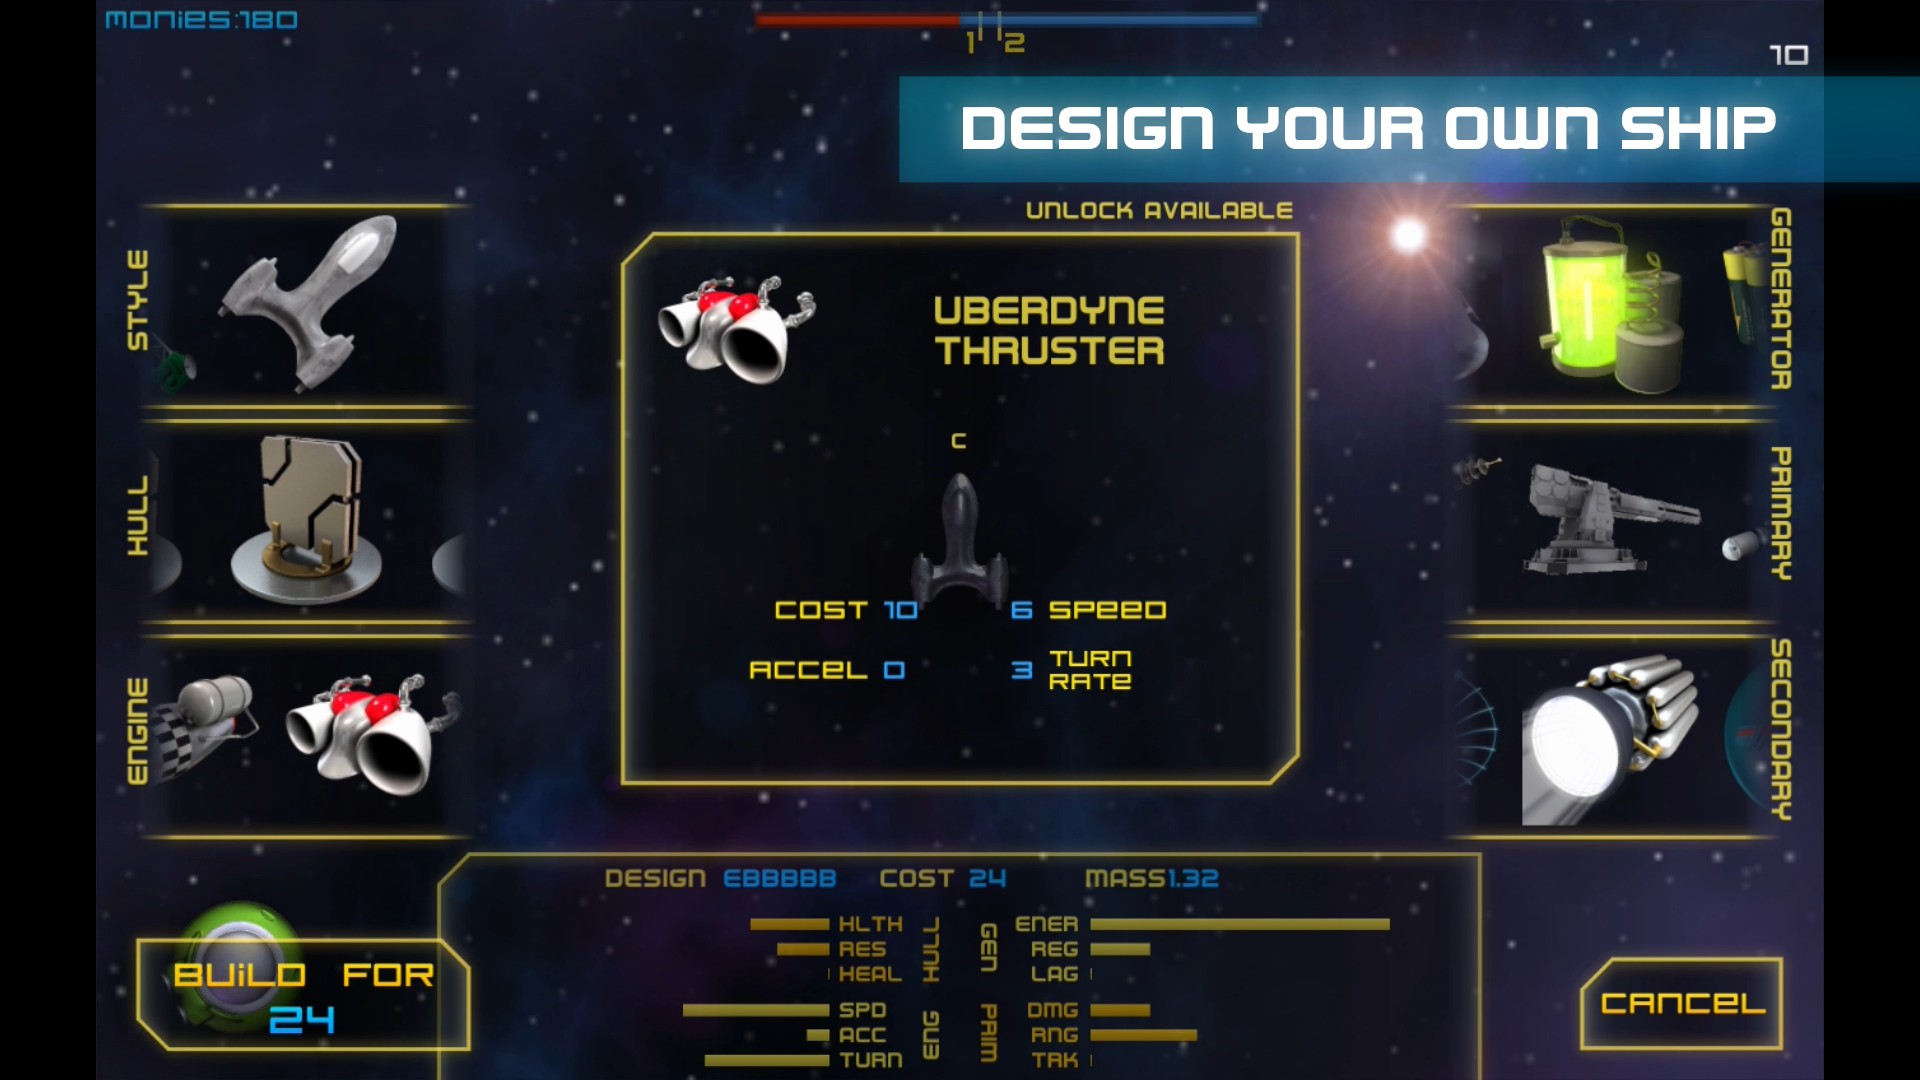 Design your own ships